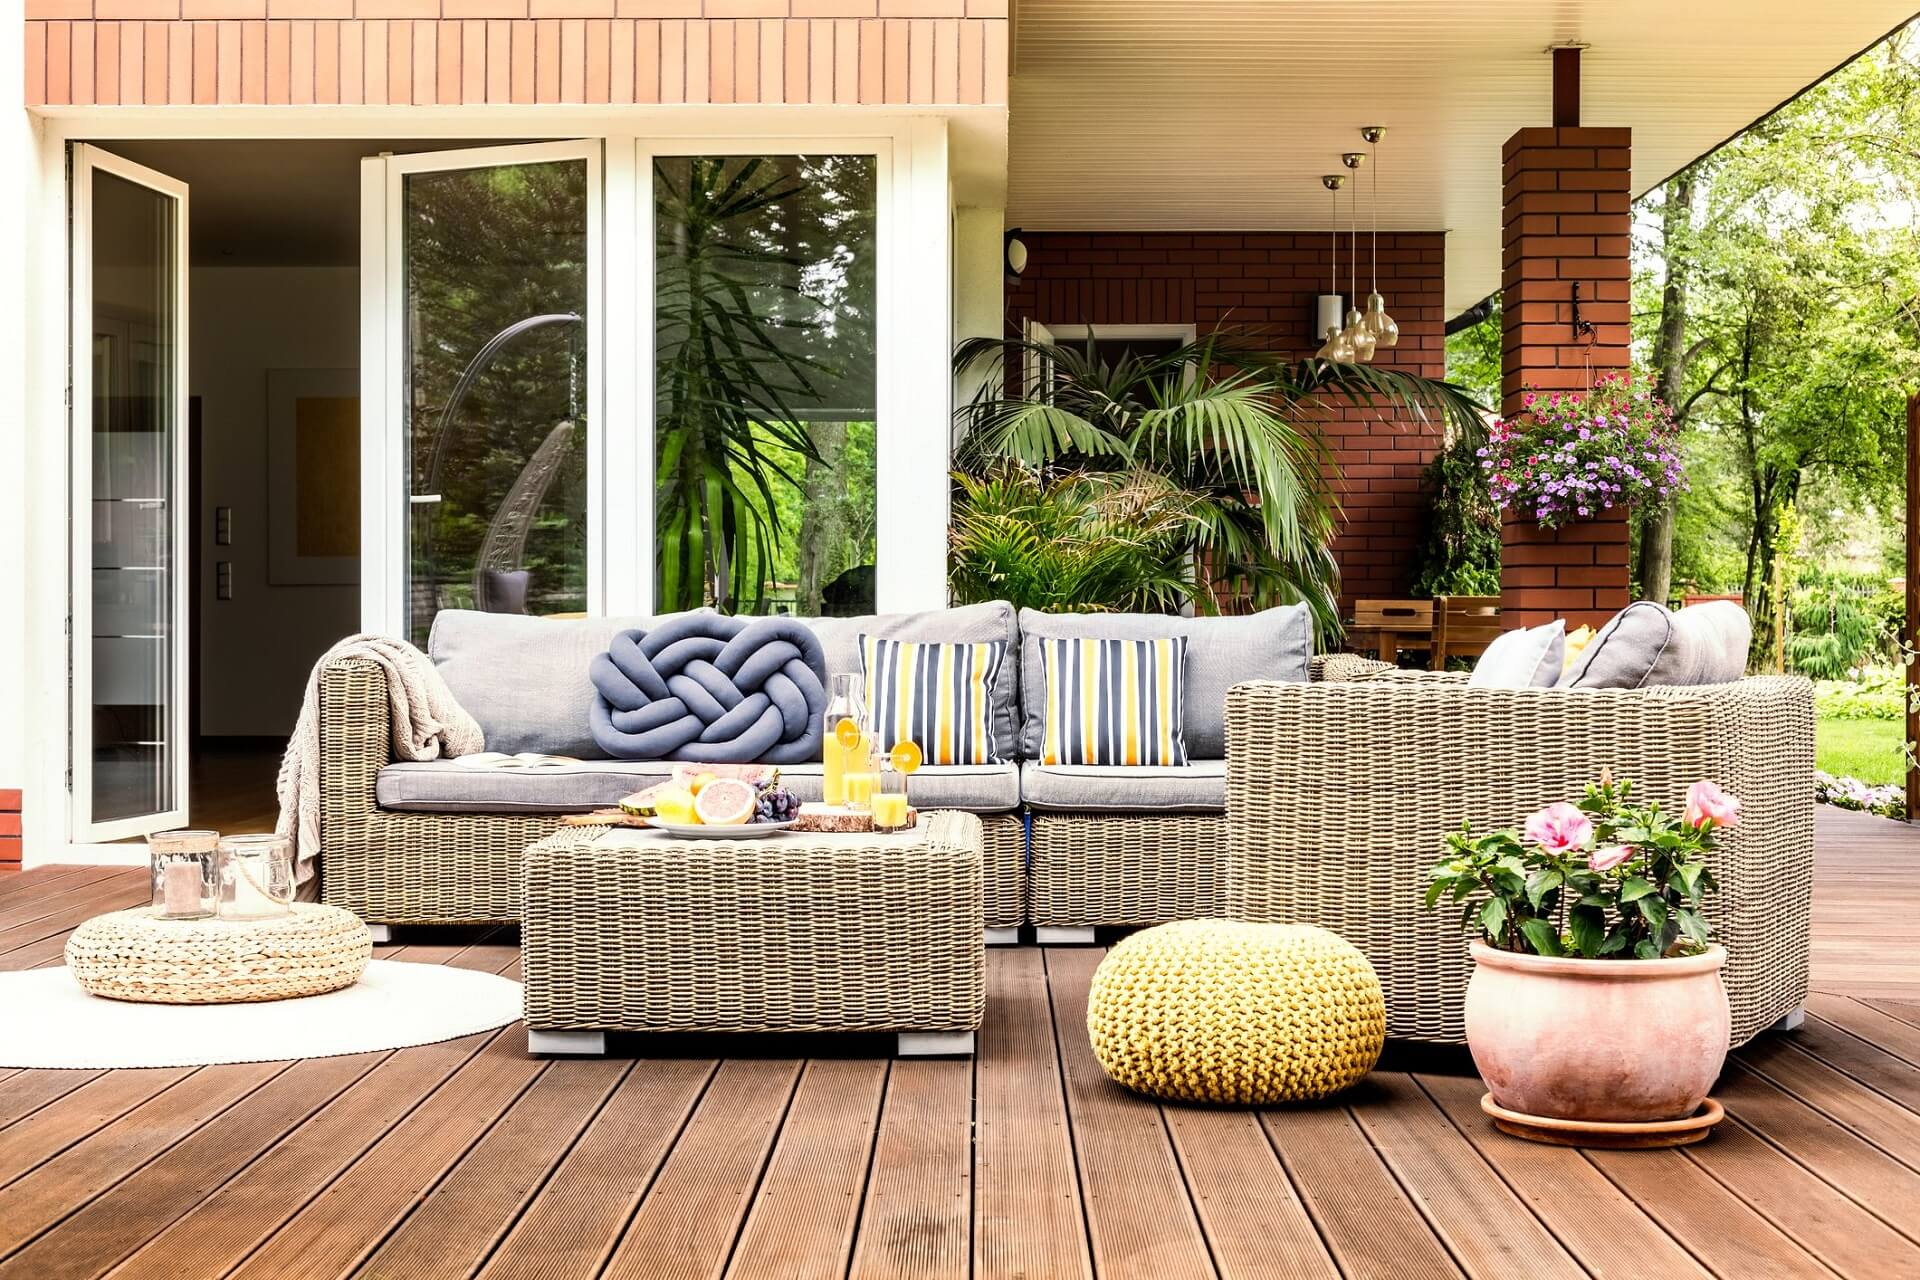 Denton TX Professional Landscapers & Outdoor Living Designs Home Page Image-We offer Landscape Design, Outdoor Patios & Pergolas, Outdoor Living Spaces, Stonescapes, Residential & Commercial Landscaping, Irrigation Installation & Repairs, Drainage Systems, Landscape Lighting, Outdoor Living Spaces, Tree Service, Lawn Service, and more.